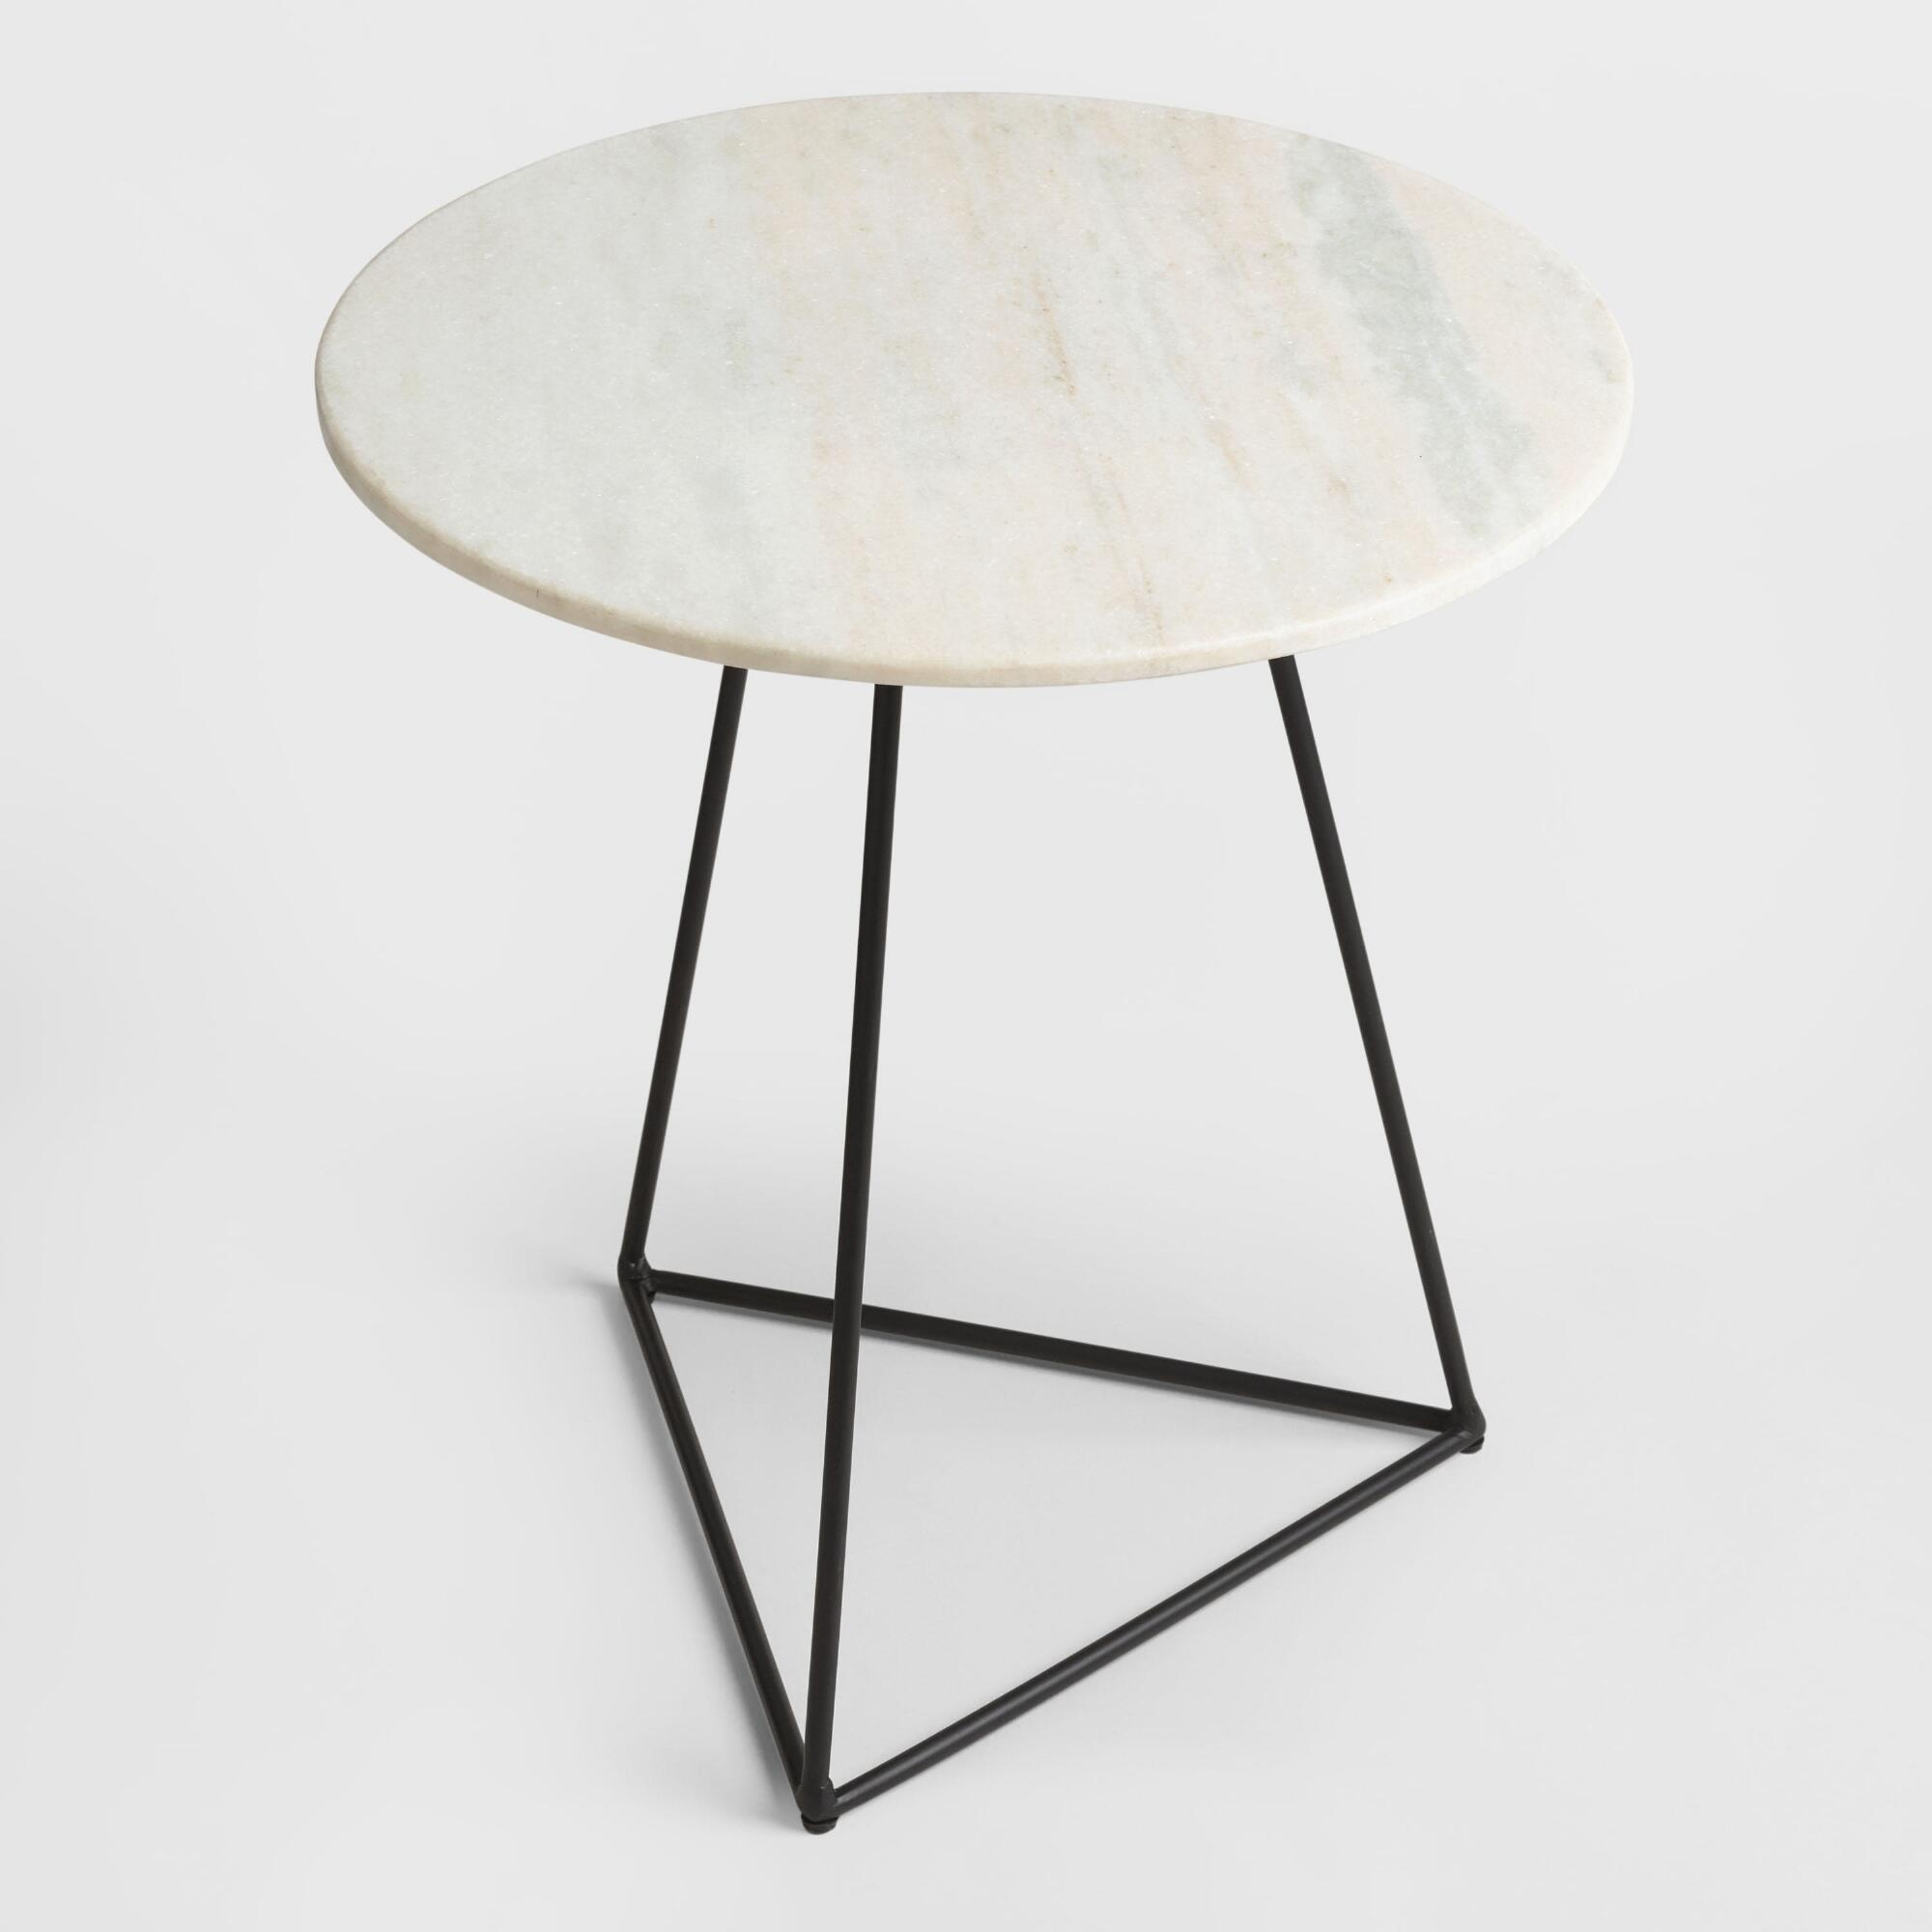 small space coffee side tables world market iipsrv fcgi metal tray accent table round white marble and end target outdoor shelf kitchen counter lamps rattan pier dishes bistro